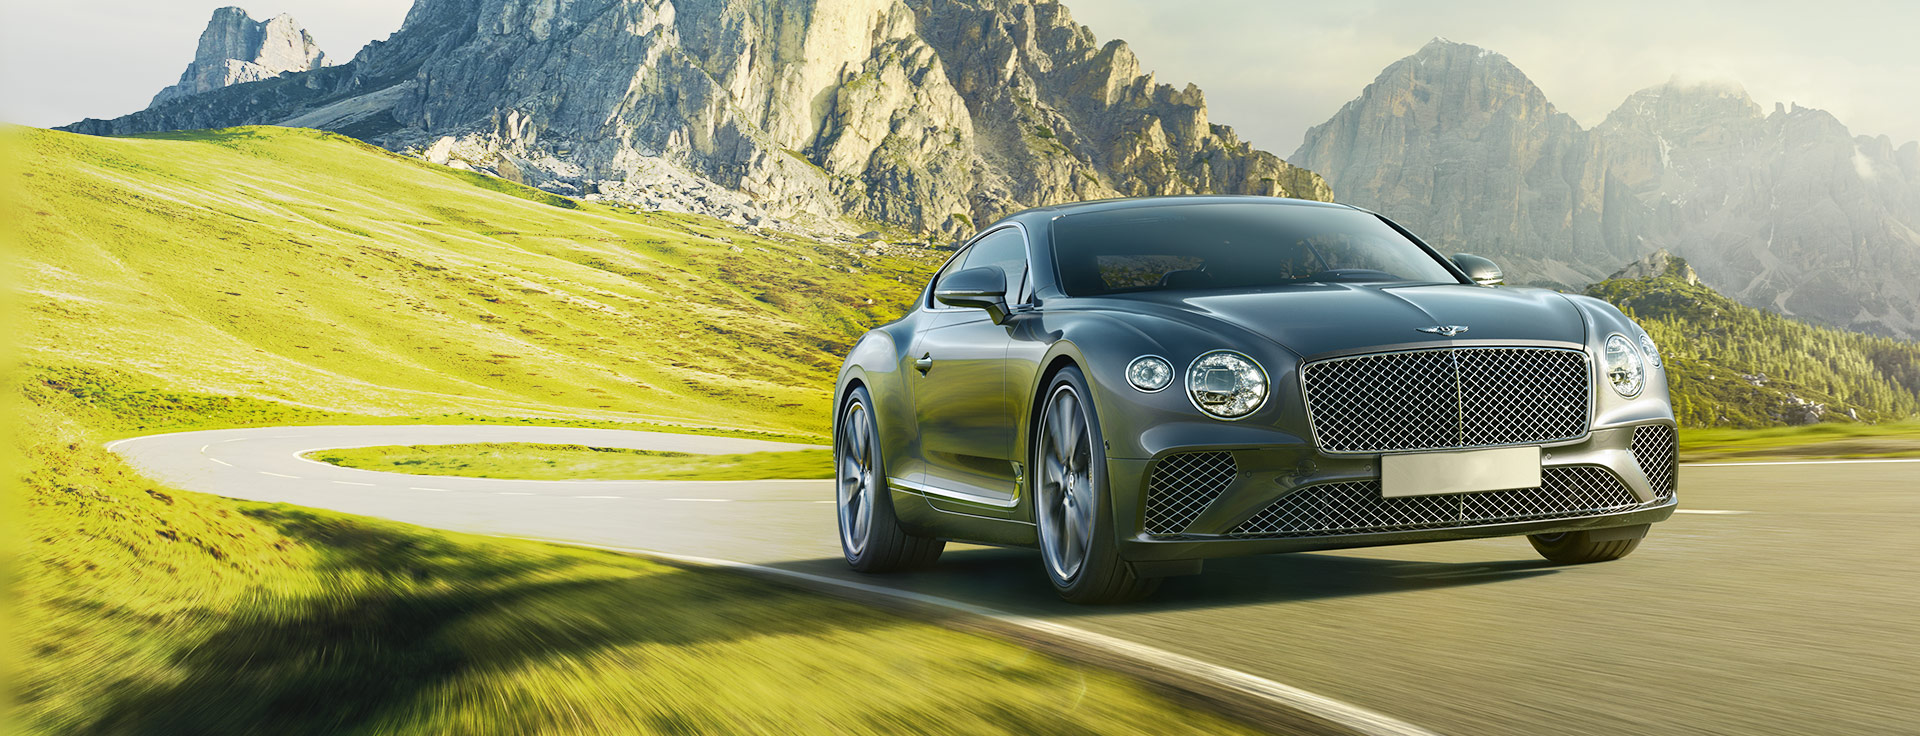 Bentley - Pirelli - the official technical partner of Bentley Motors